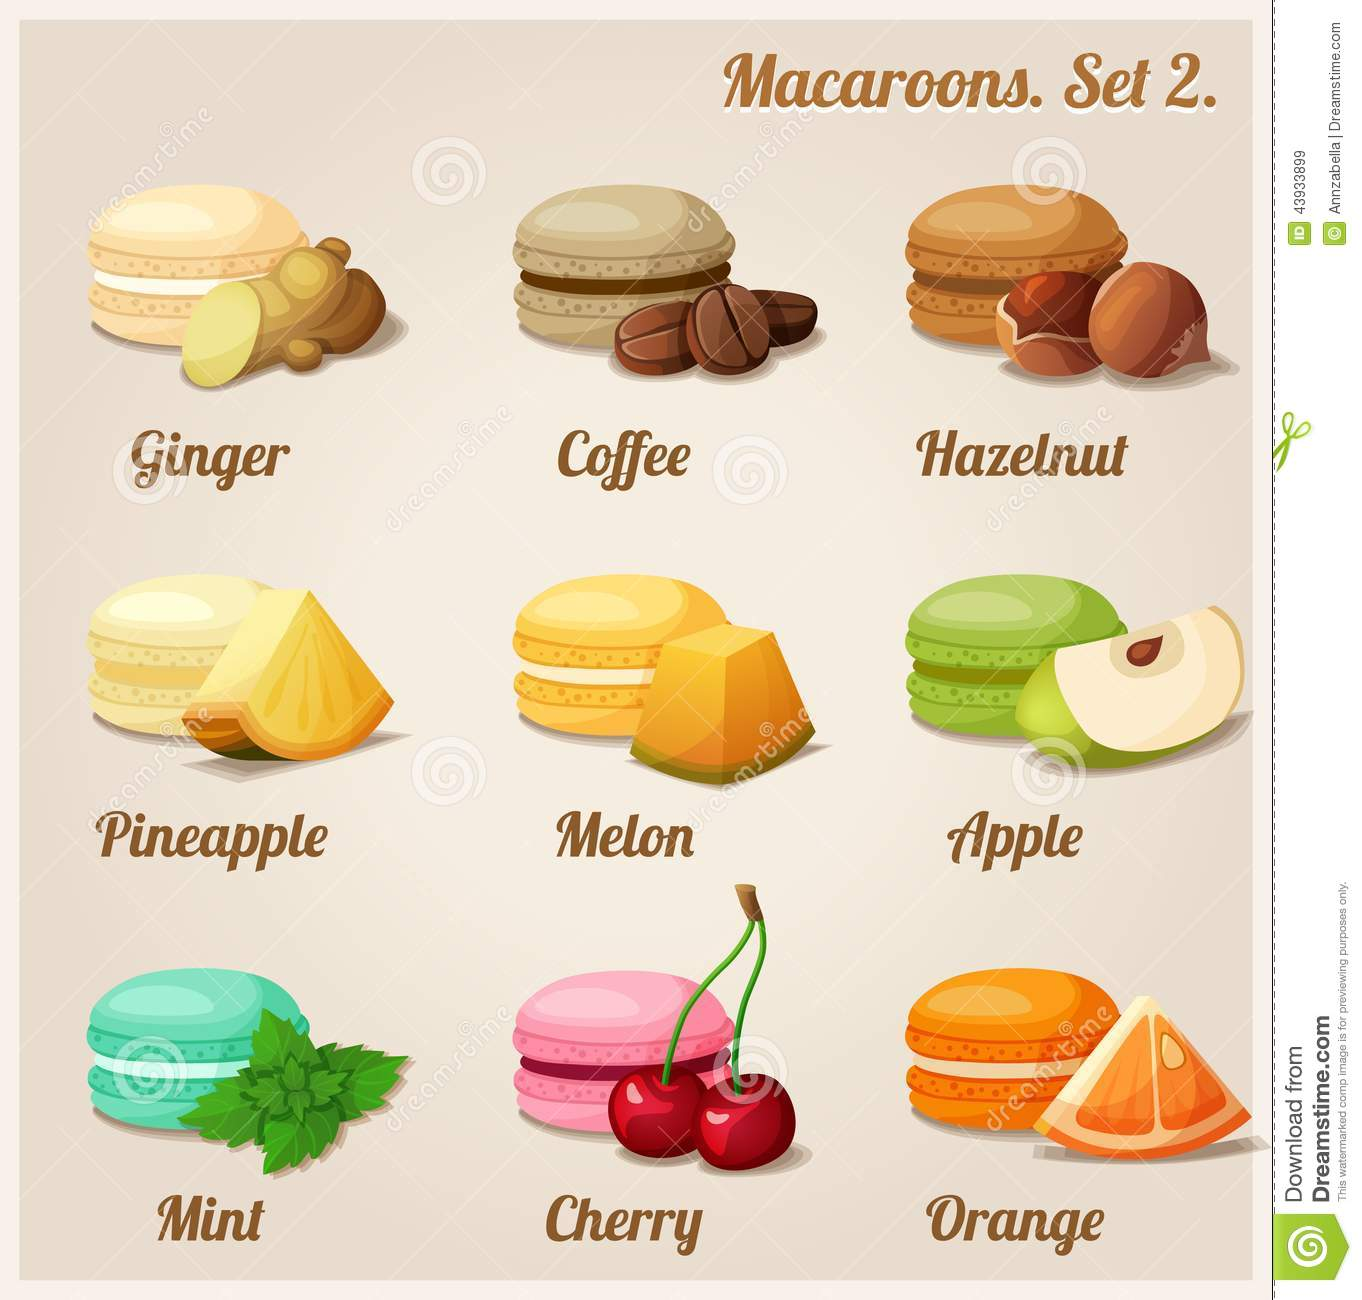 Macaron Different Flavor Stock Illustrations.